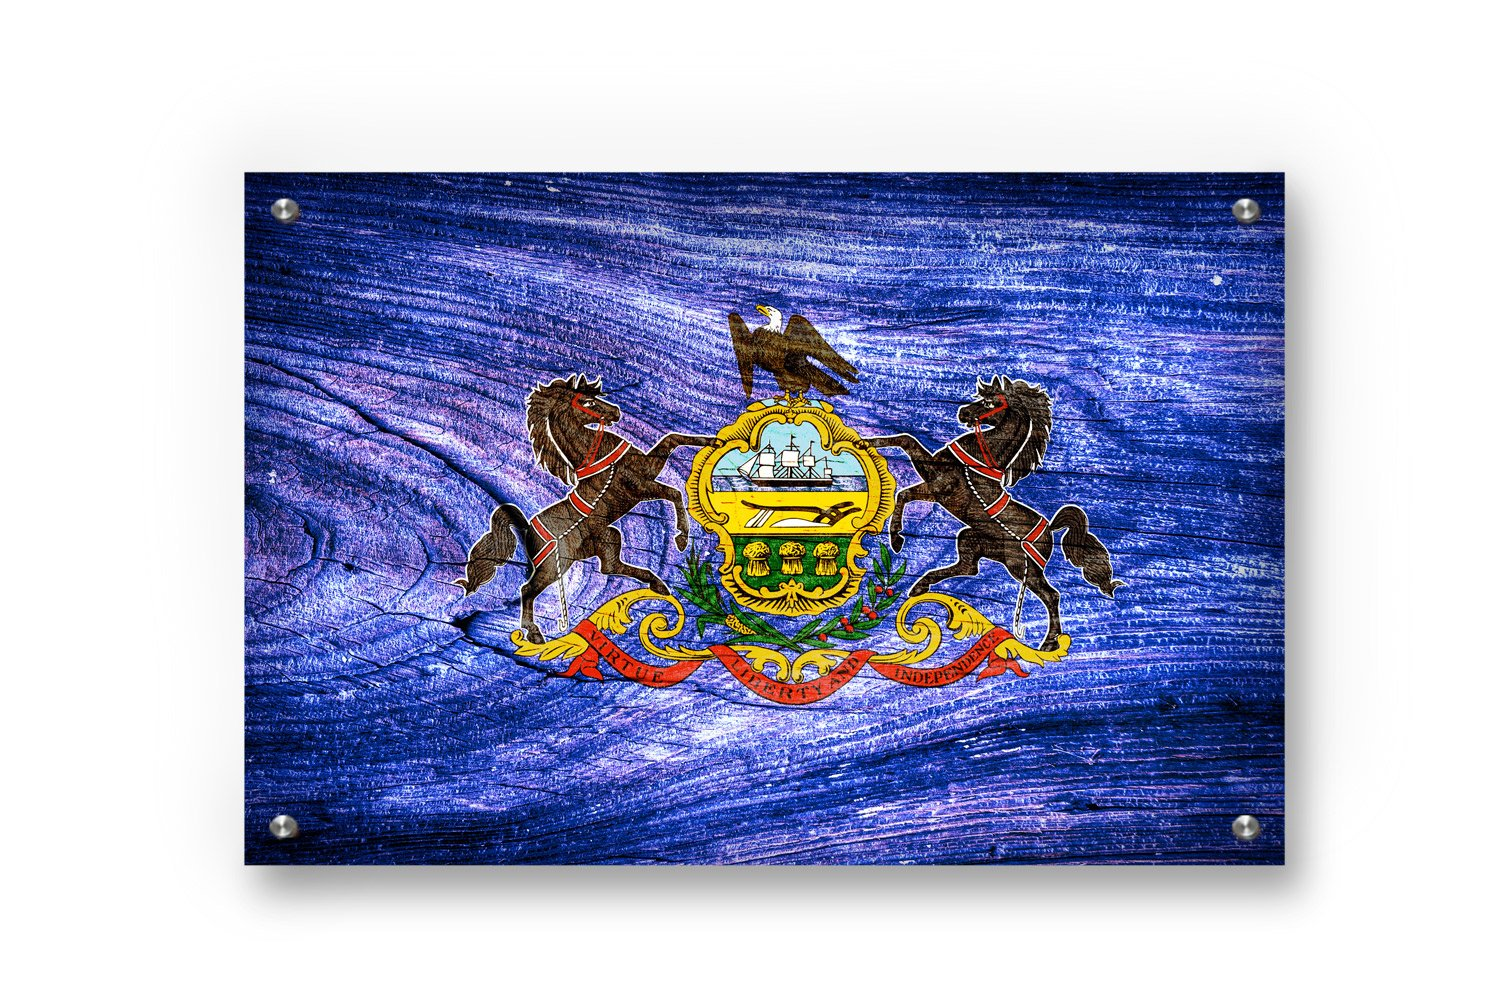 Pennsylvania State Flag Graffiti Wall Art printed on Brushed Aluminum by Buttered Kat (Large (33 x 22 Inches))